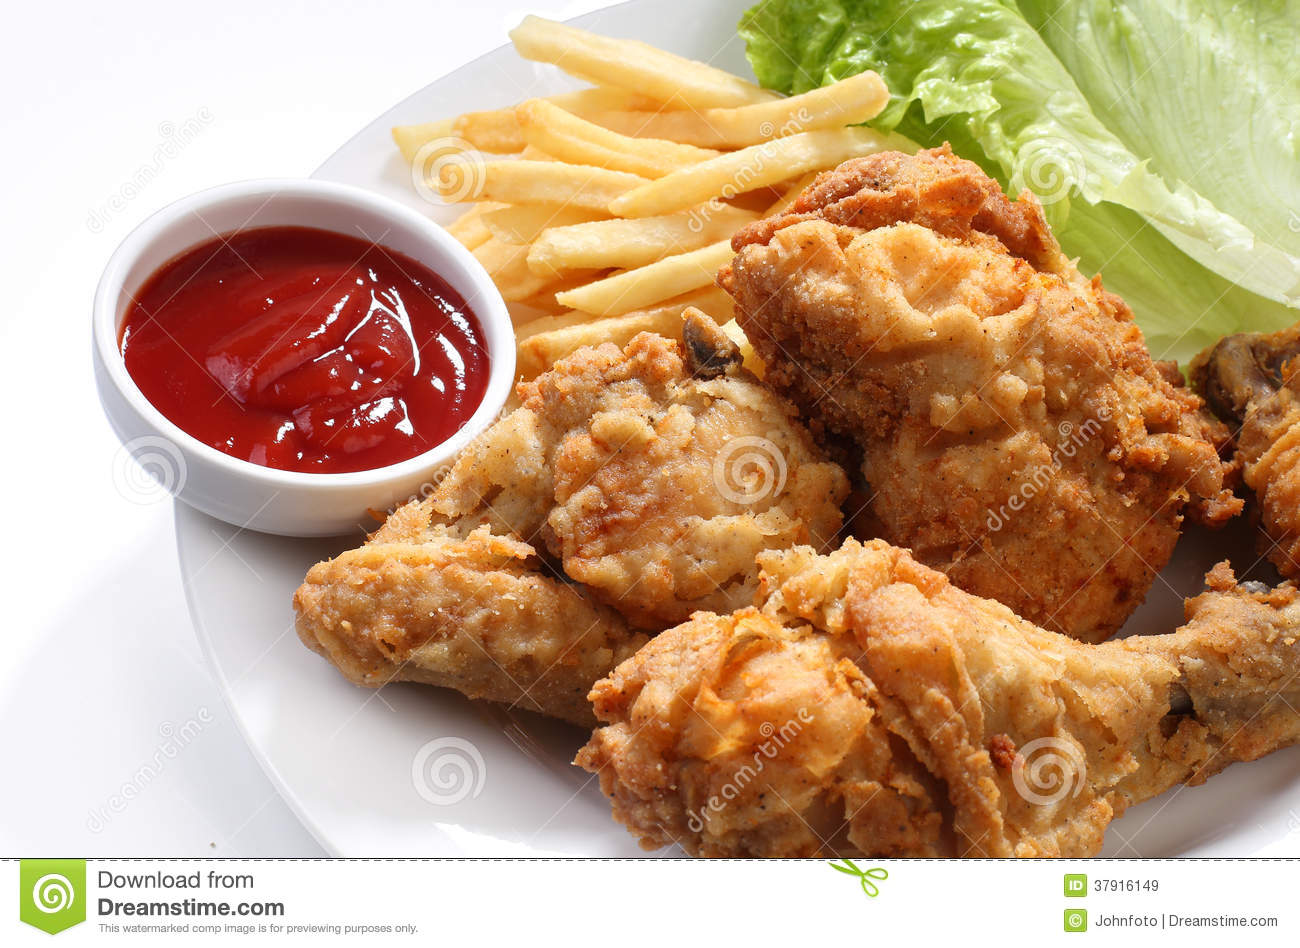 Fried Chicken And Fries With Ketchup Royalty Free Stock Images - Image ...